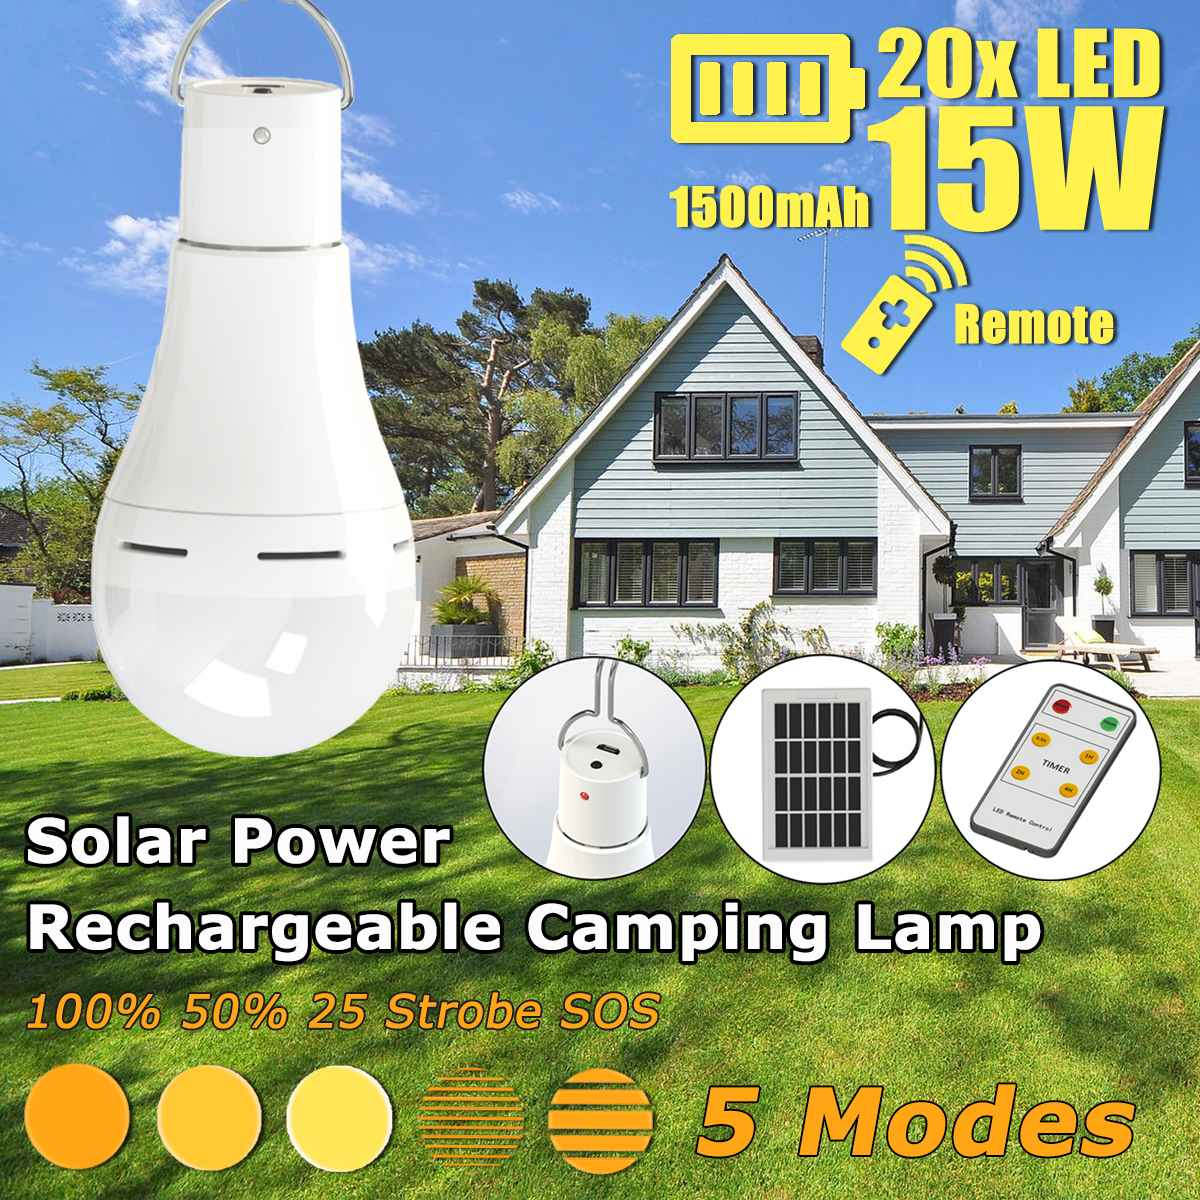 15W/20W Solar Power USB Rechargeable Camping Light Bulb 5-Modes W/ Solar Panel 3 Meters  Cable & Remote Solar Lamps